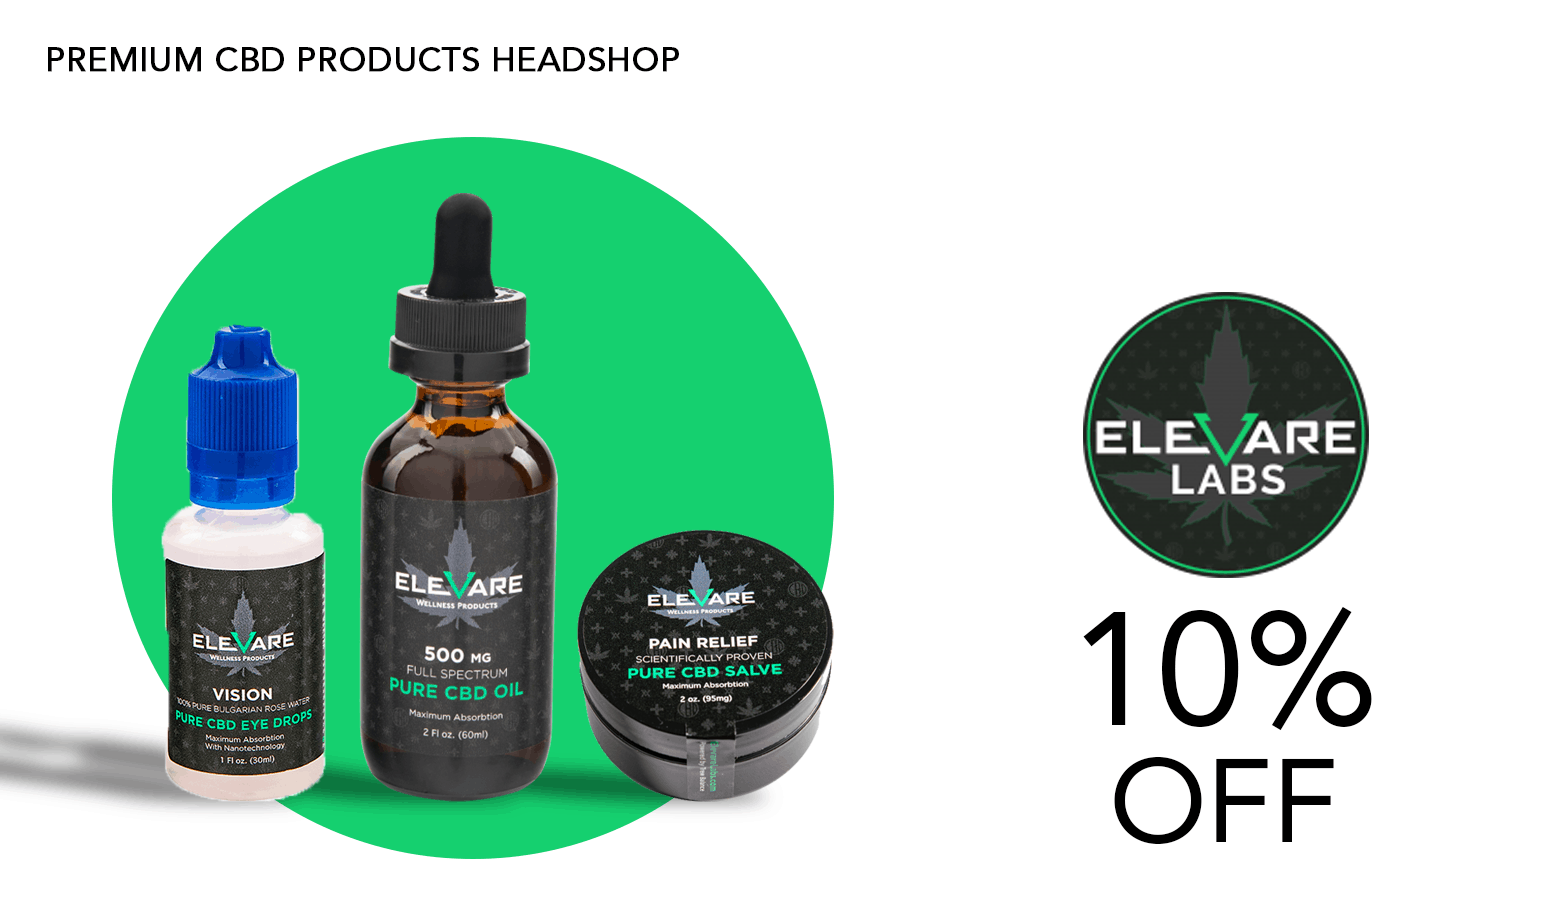 Elevare Labs CBD Coupon Code Offer Website